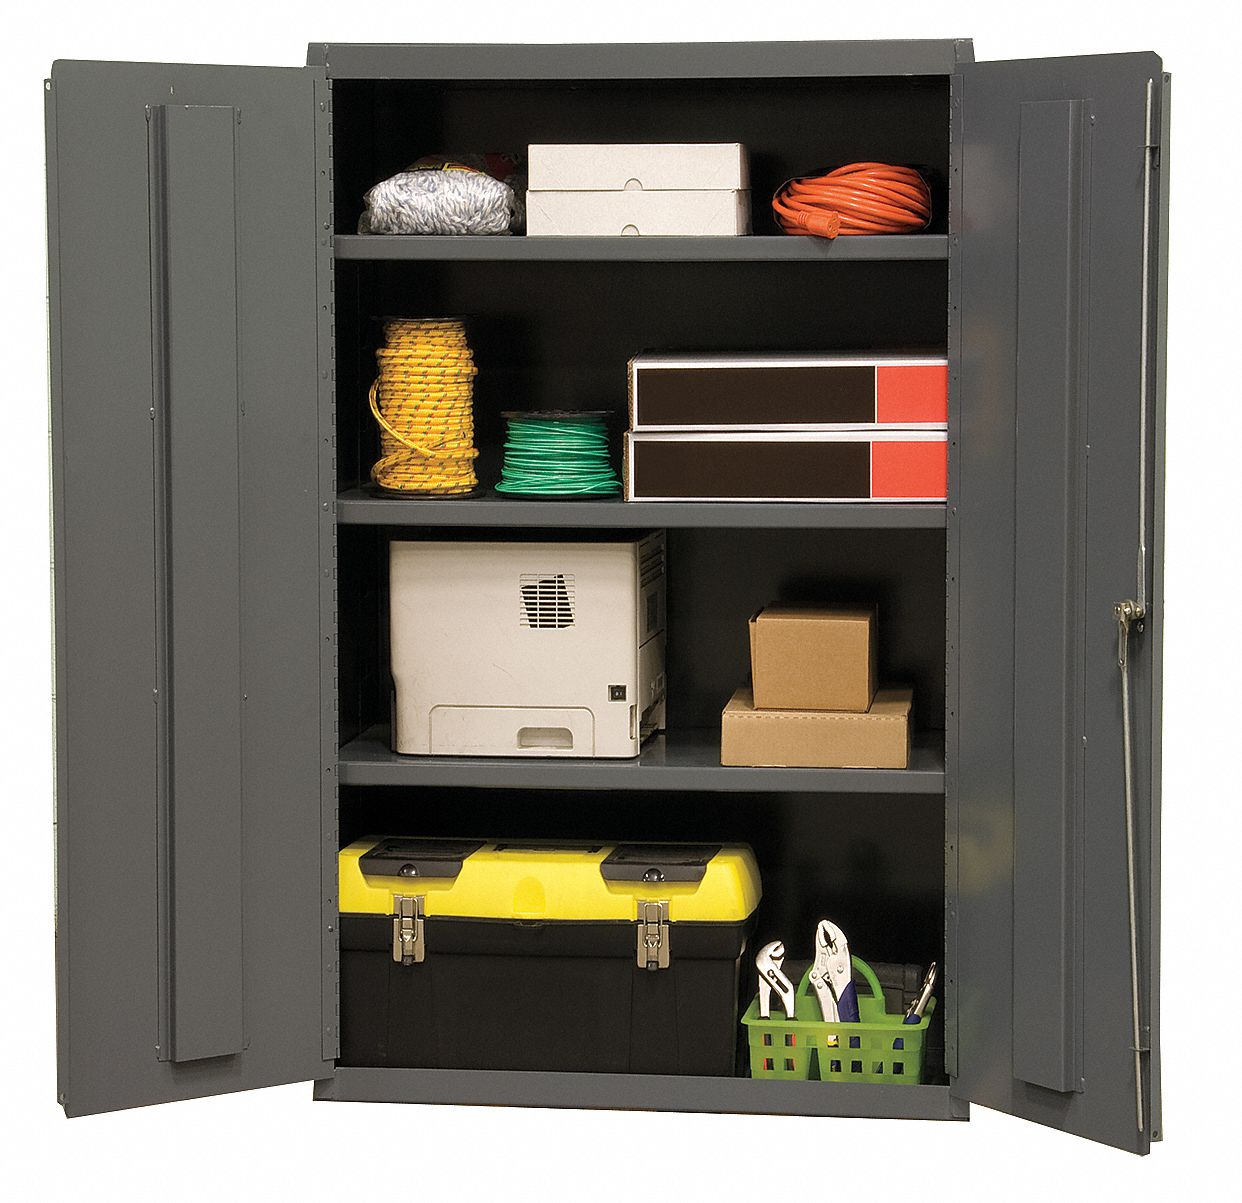 durham industrial storage cabinet gray 60 h x 36 w x 18 d assembled 16d676 2601 3s 95. Black Bedroom Furniture Sets. Home Design Ideas